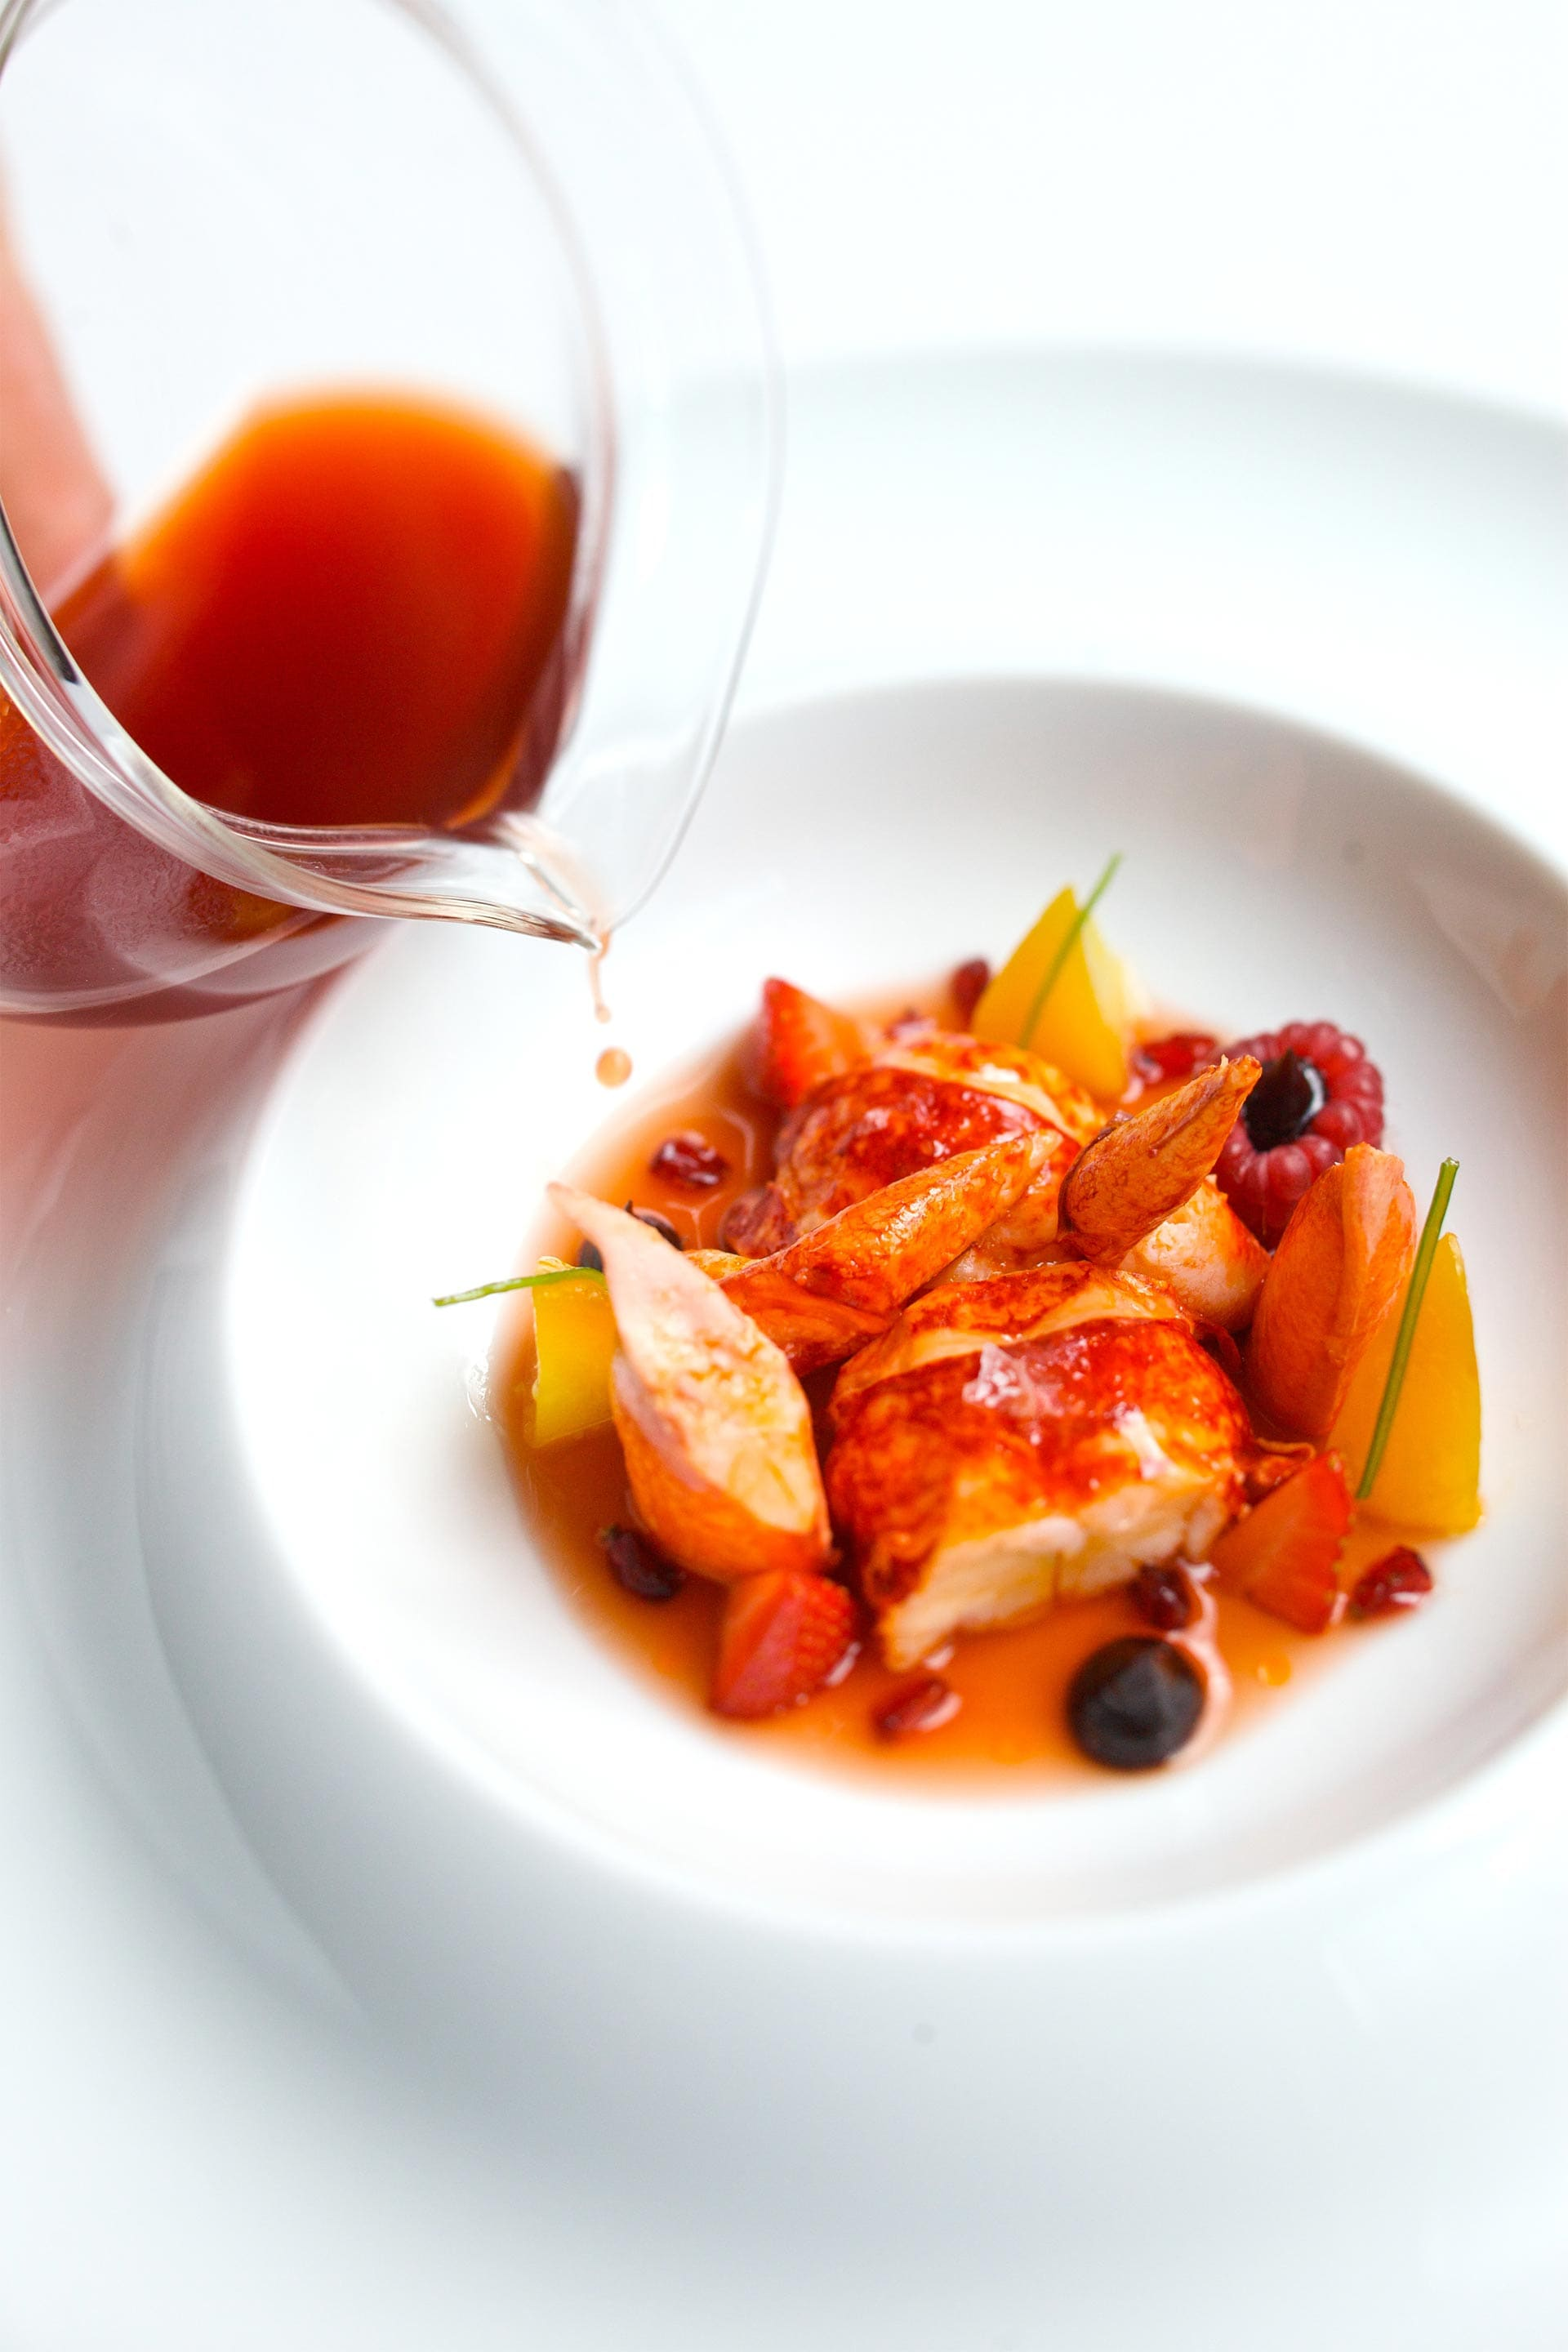 Homard Fruits Rouges ©Jean-Francois-Mallet